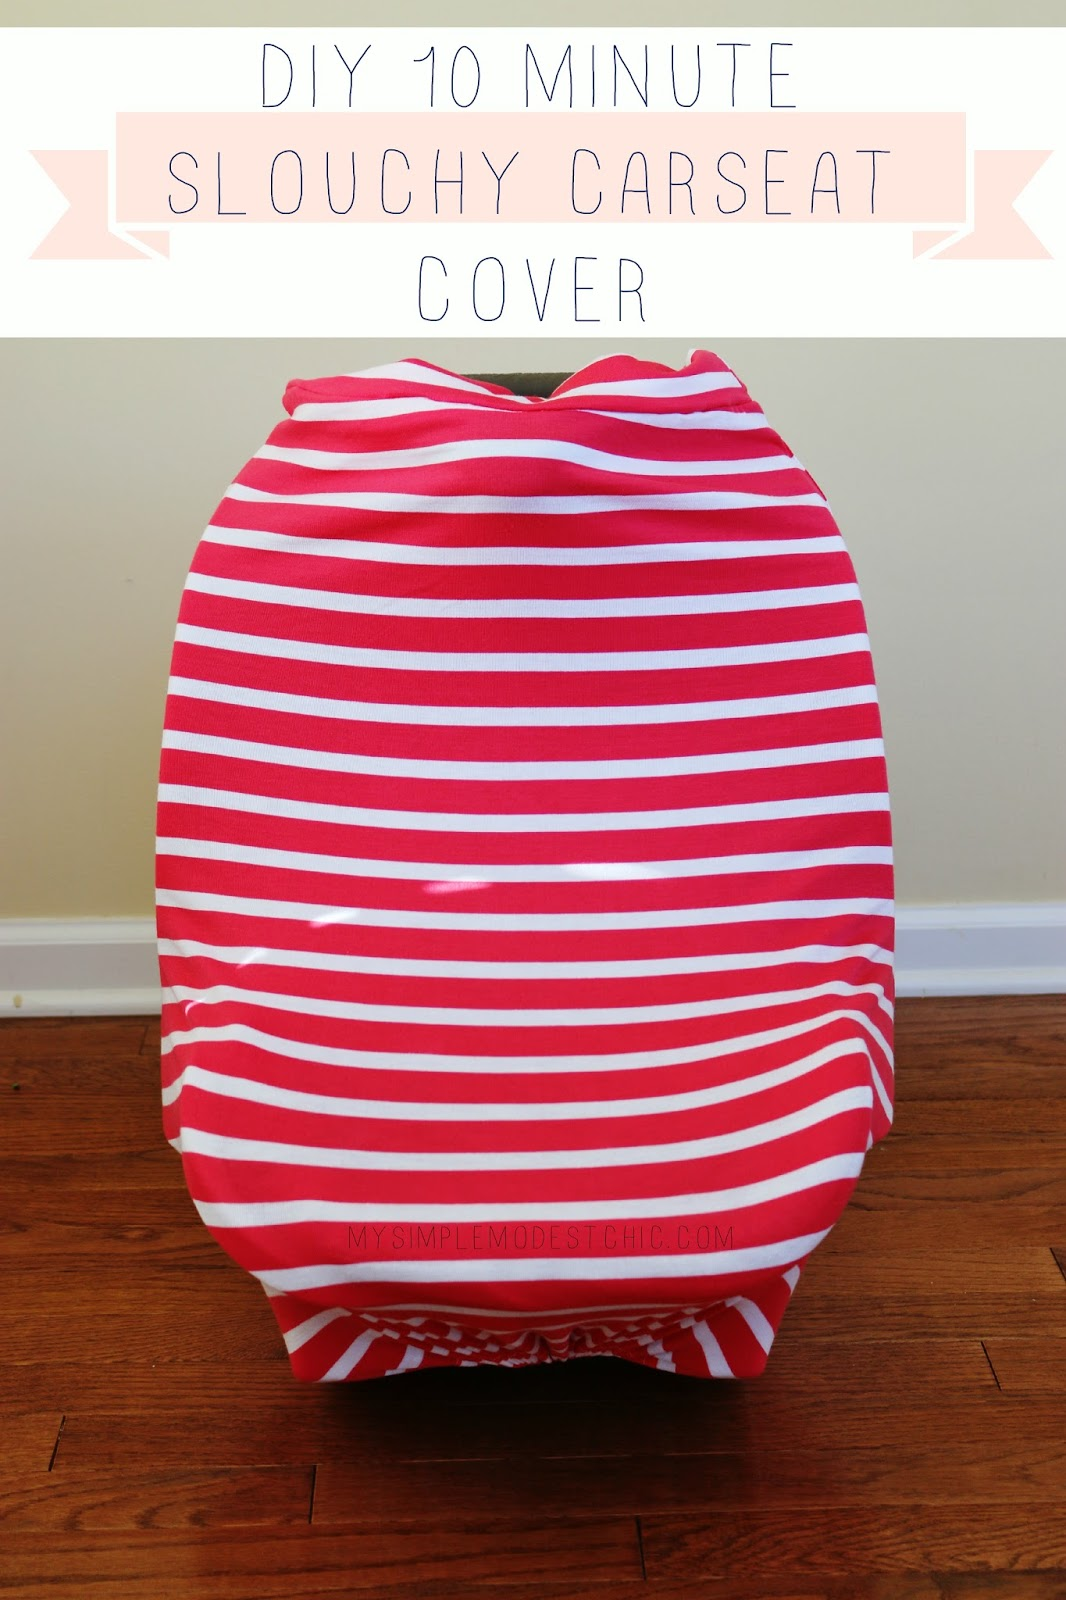 My Simple Modest Chic: 10 Minute DIY Slouchy Car Seat Cover